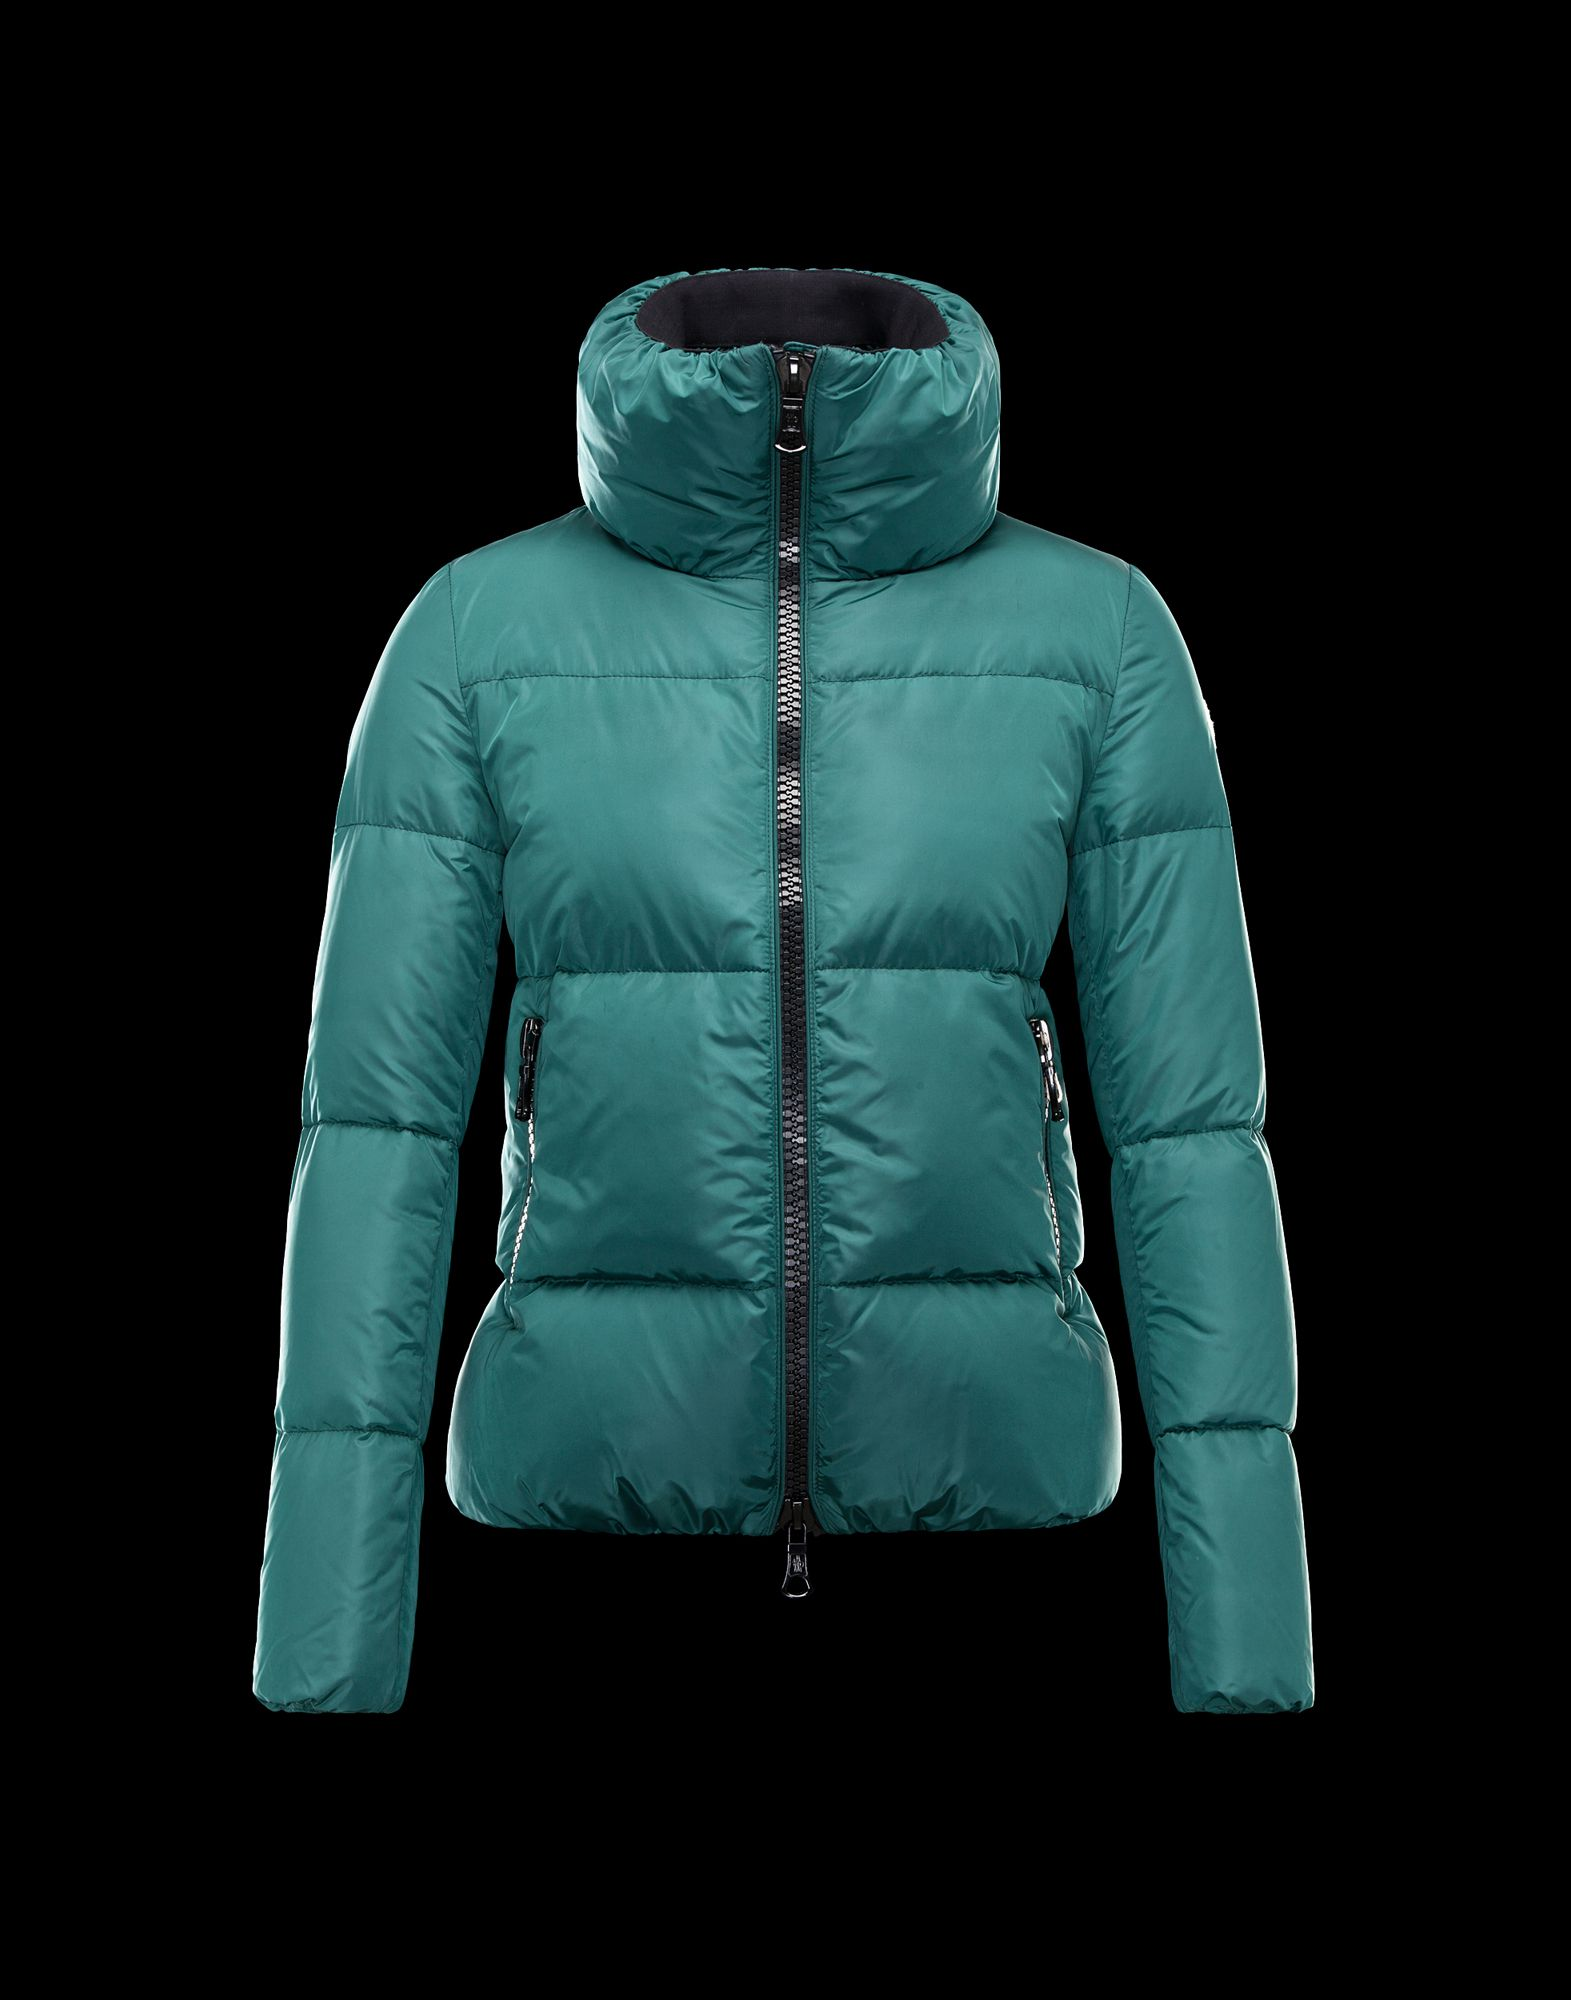 Moncler CHERY Jacket For Women Zip Collar Green